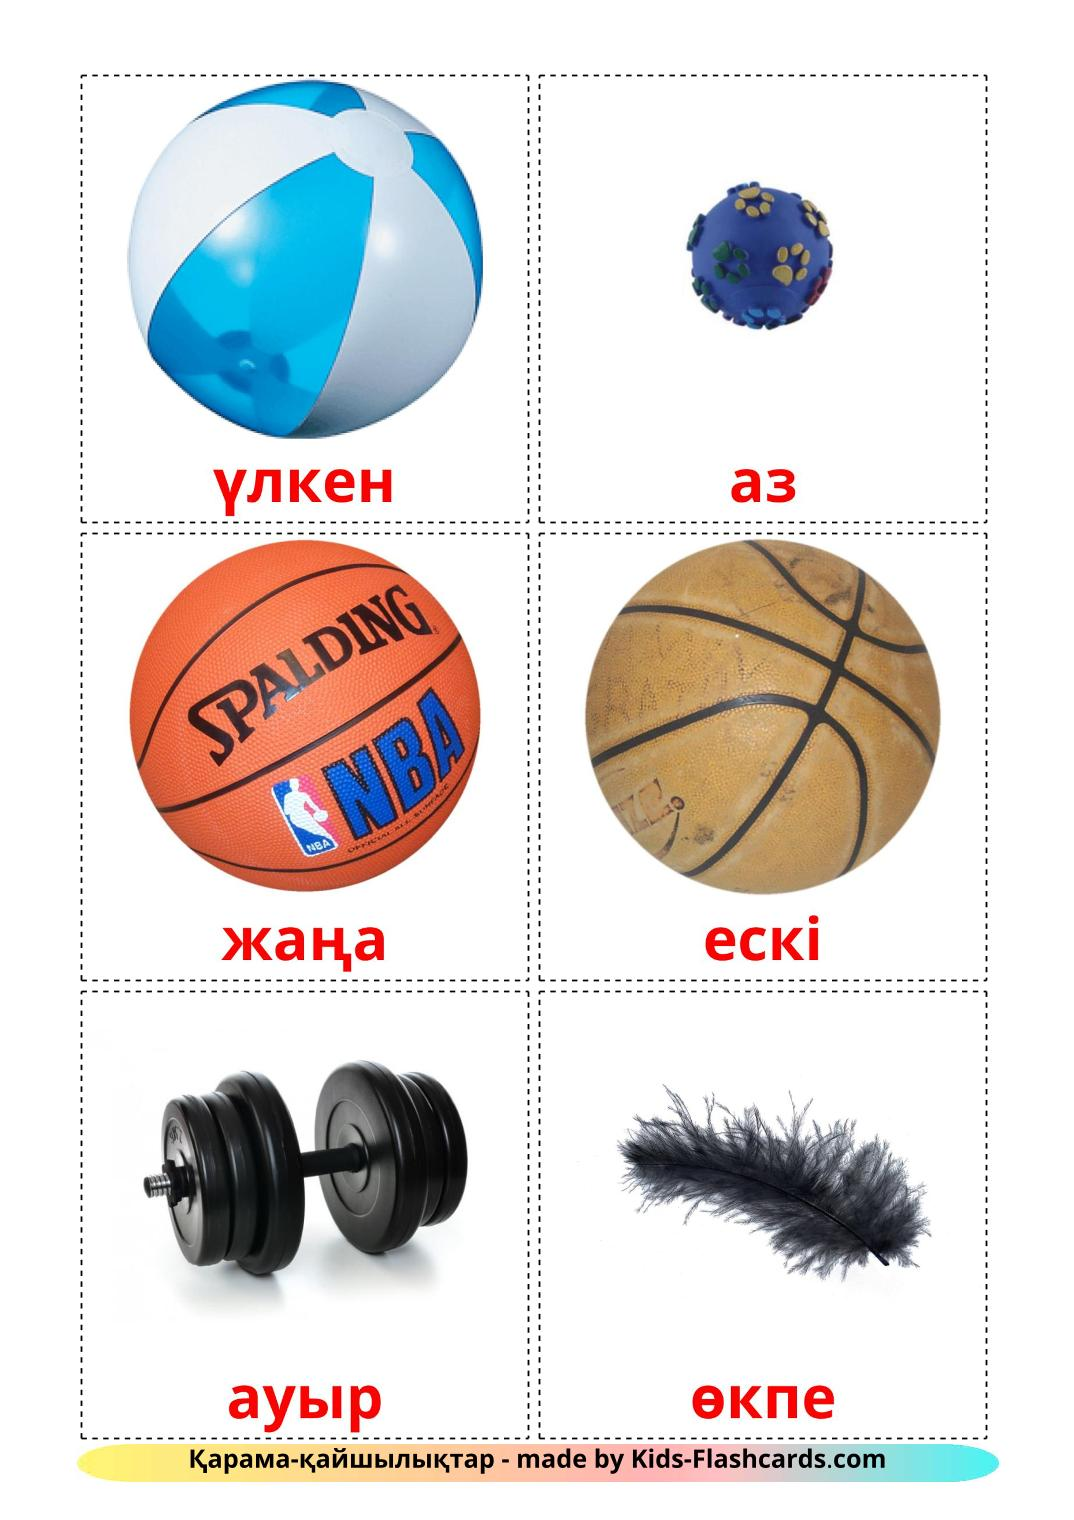 Opposites - 74 Free Printable kazakh Flashcards